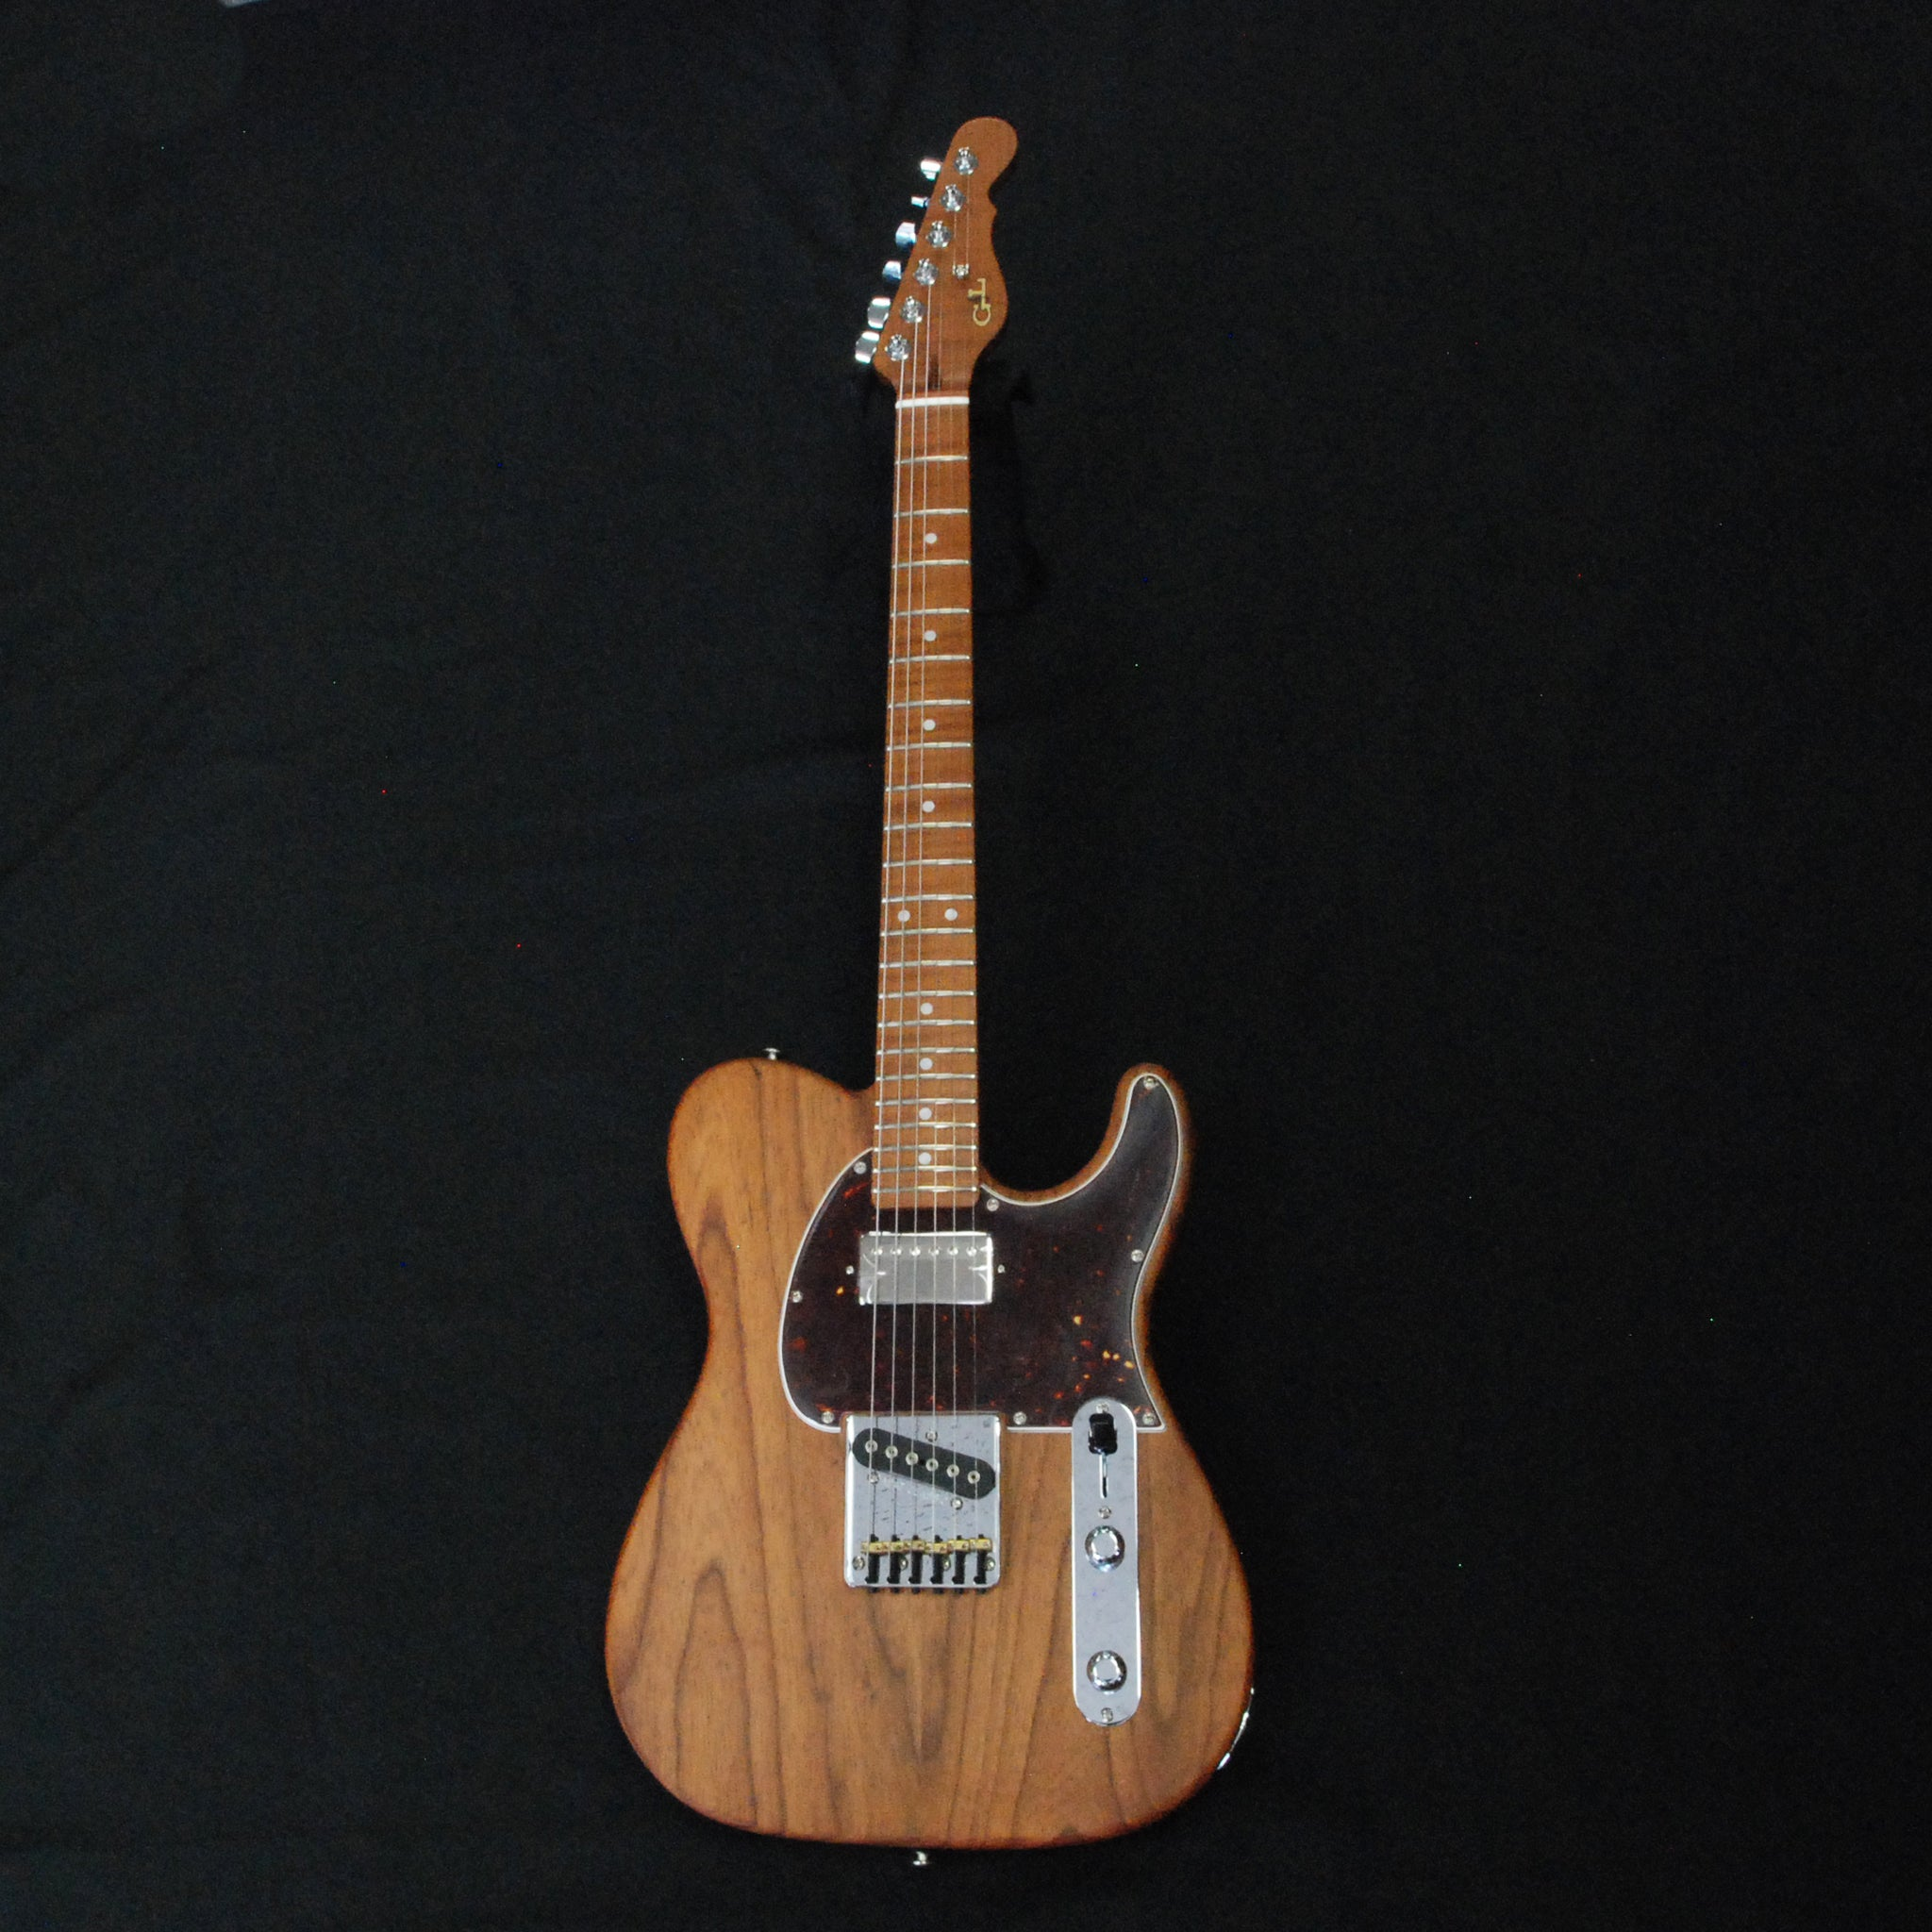 Shop online for G&L USA ASAT Classic Bluesboy Custom Shop Roasted Ash [CS1905001] today. Now available for purchase from Midlothian Music of Orland Park, Illinois, USA